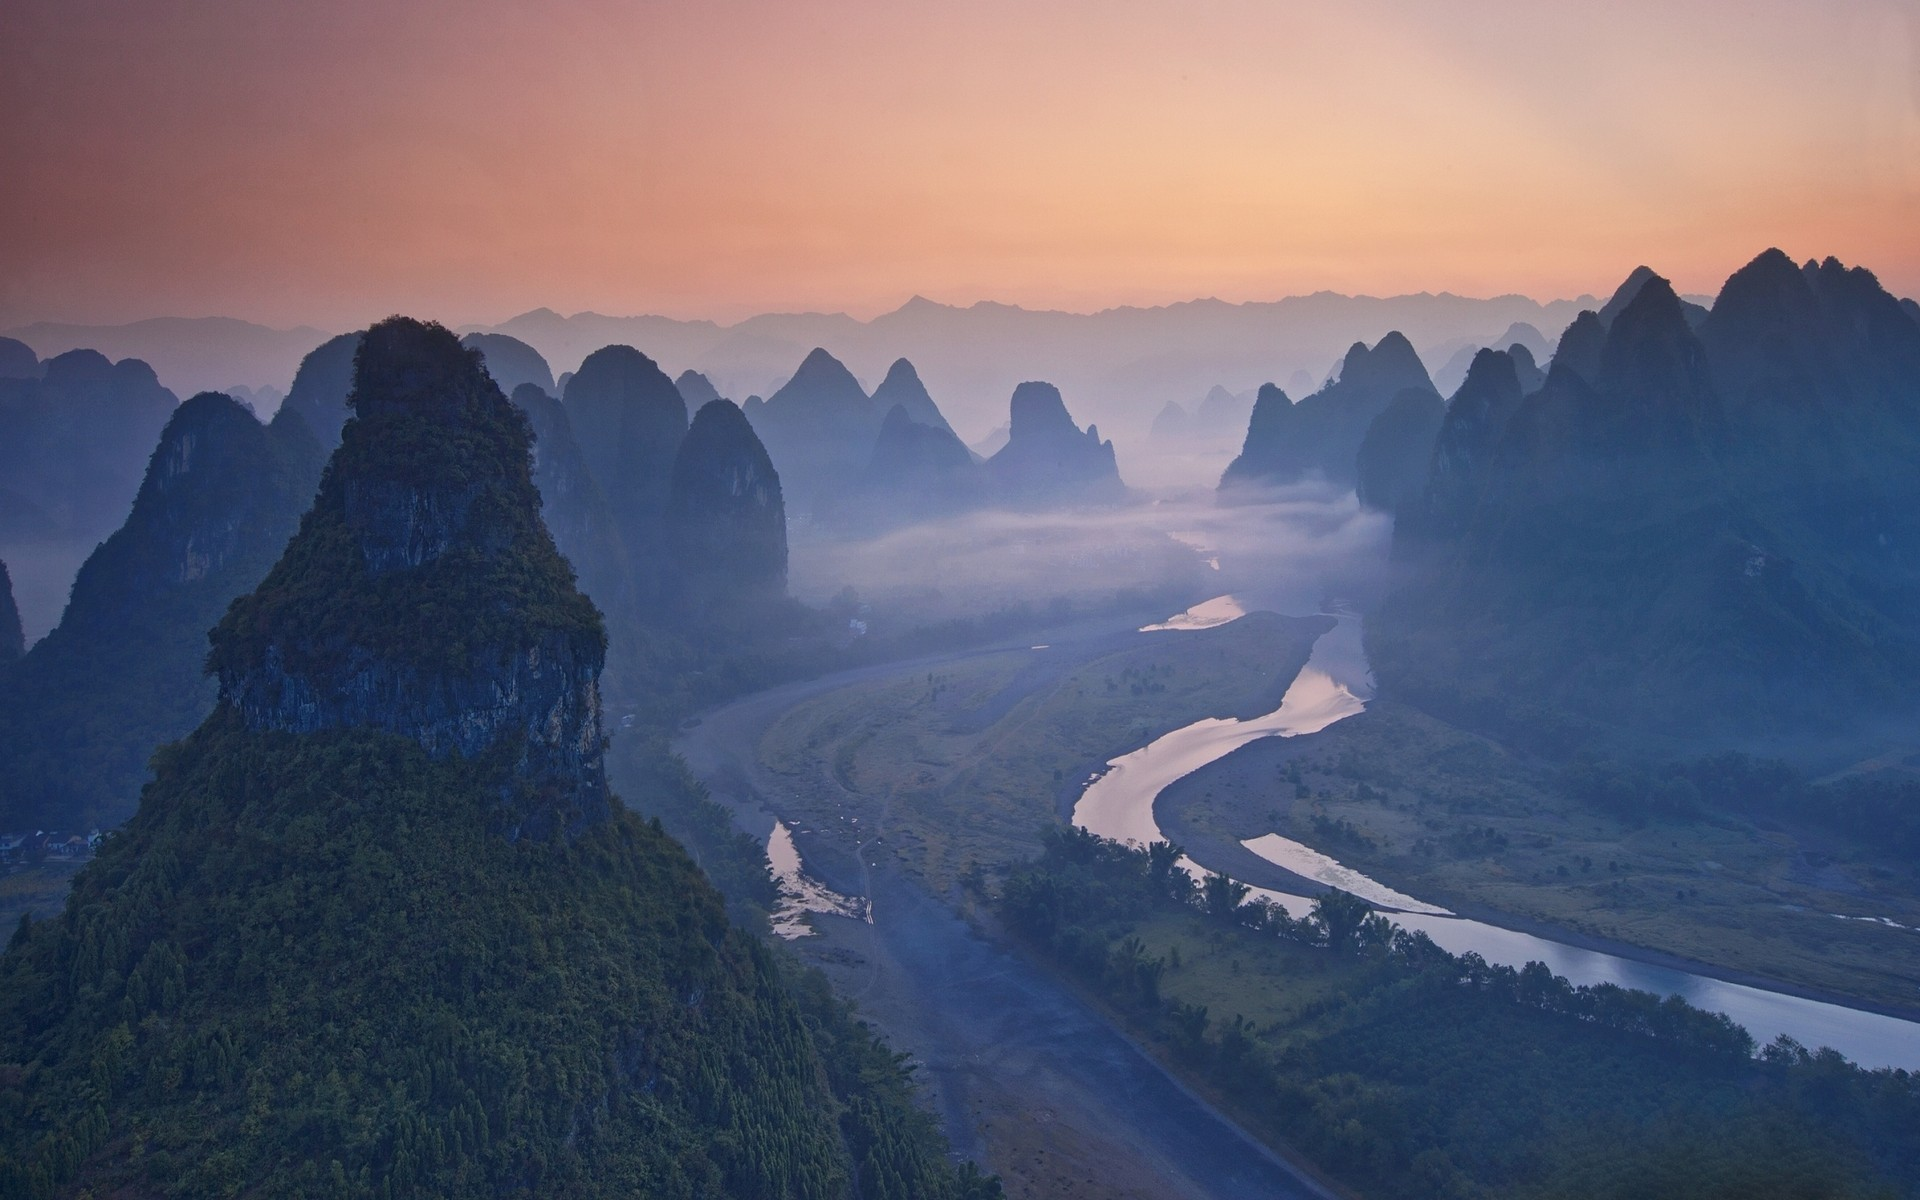 General 1920x1200 nature landscape river mist China mountains forest